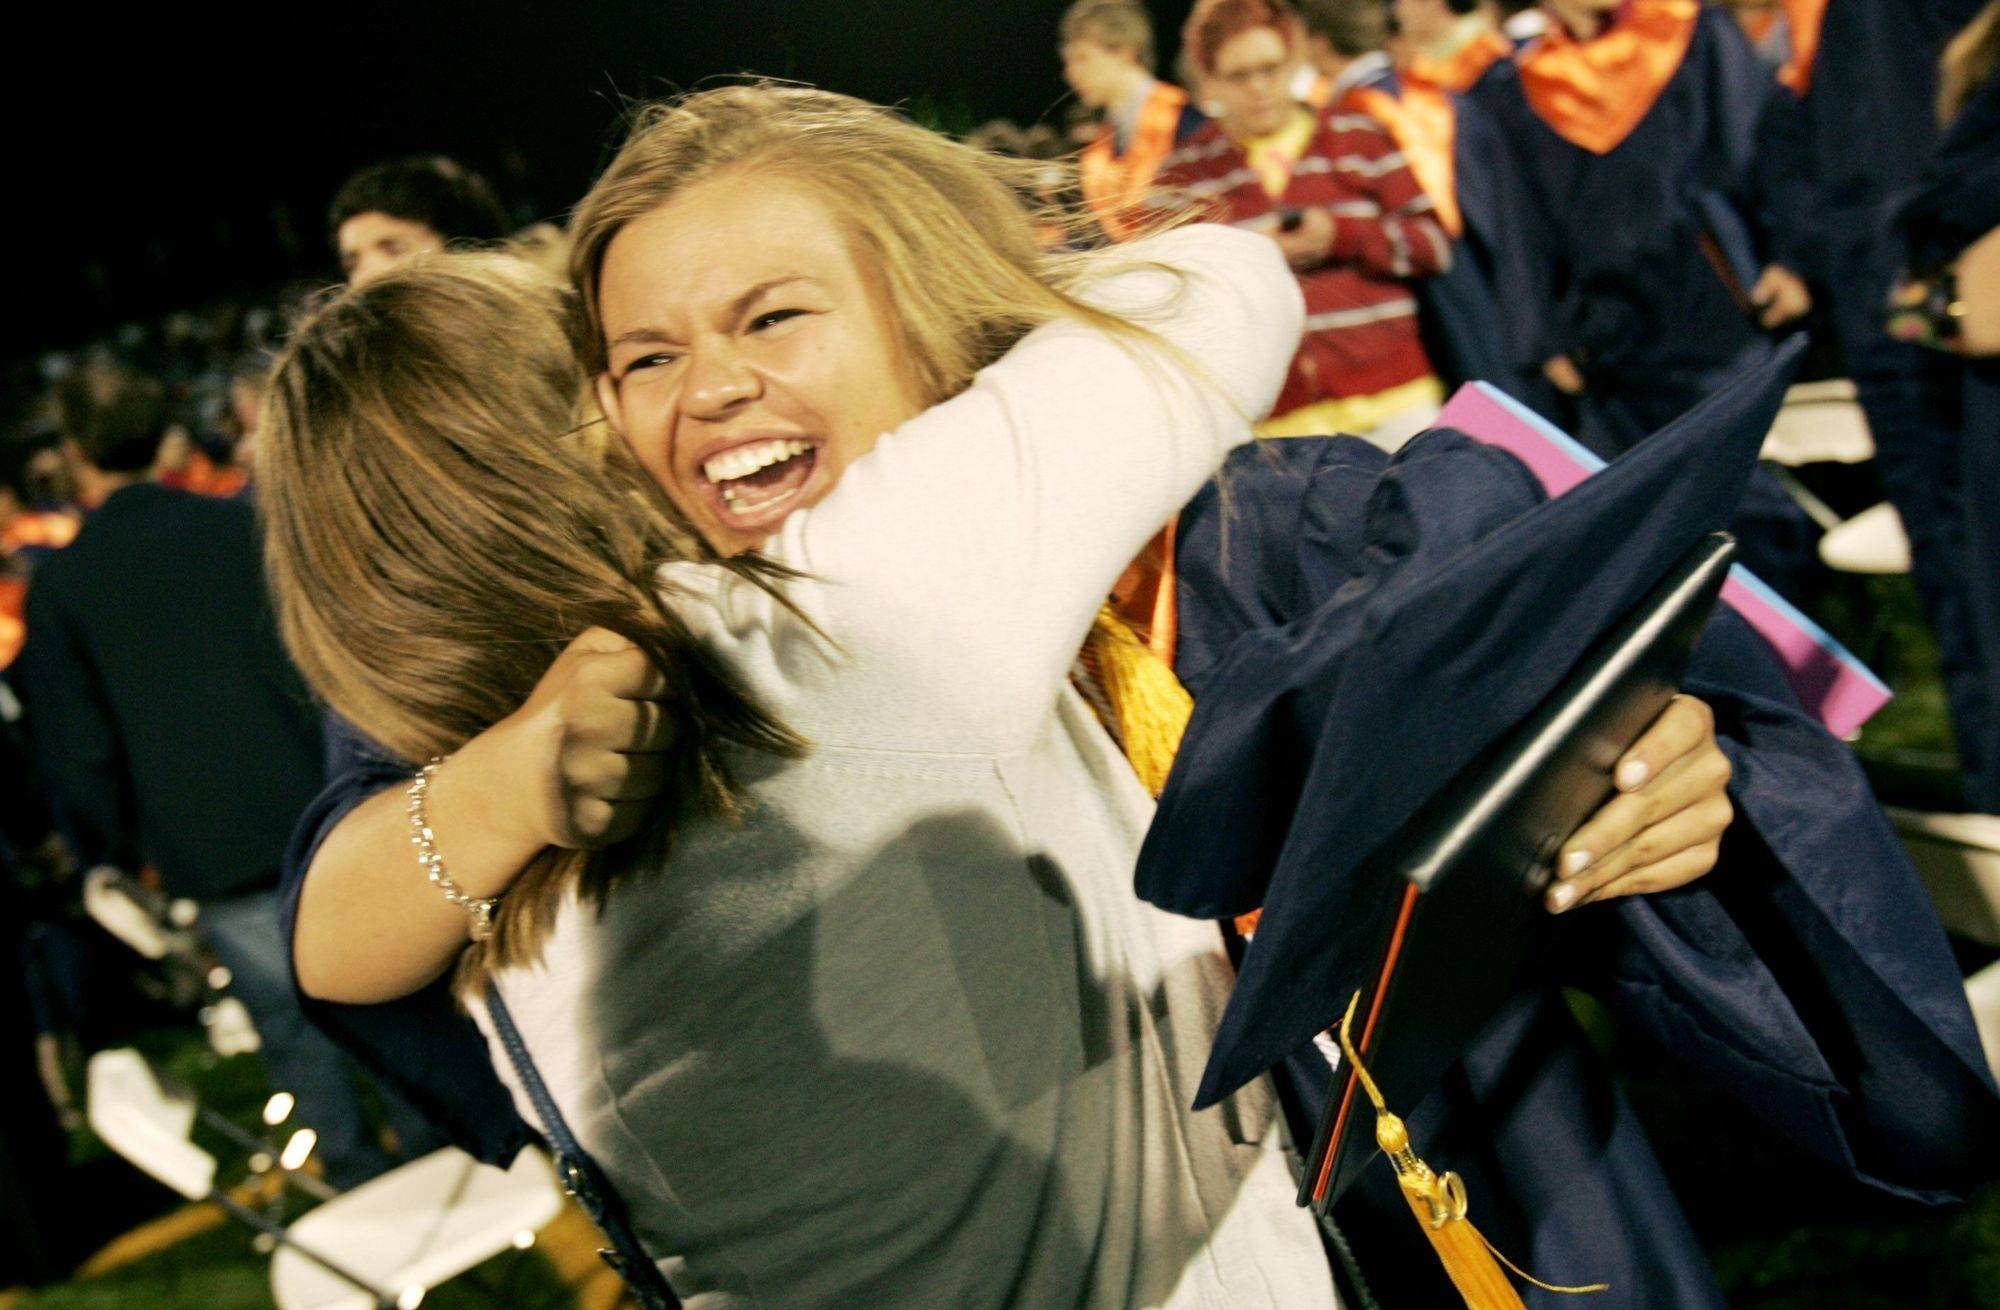 Kelly Devitt, right, gets a hug from her friend, Liz Liddle, left, after her Naperville North graduation Wednesday in Naperville.